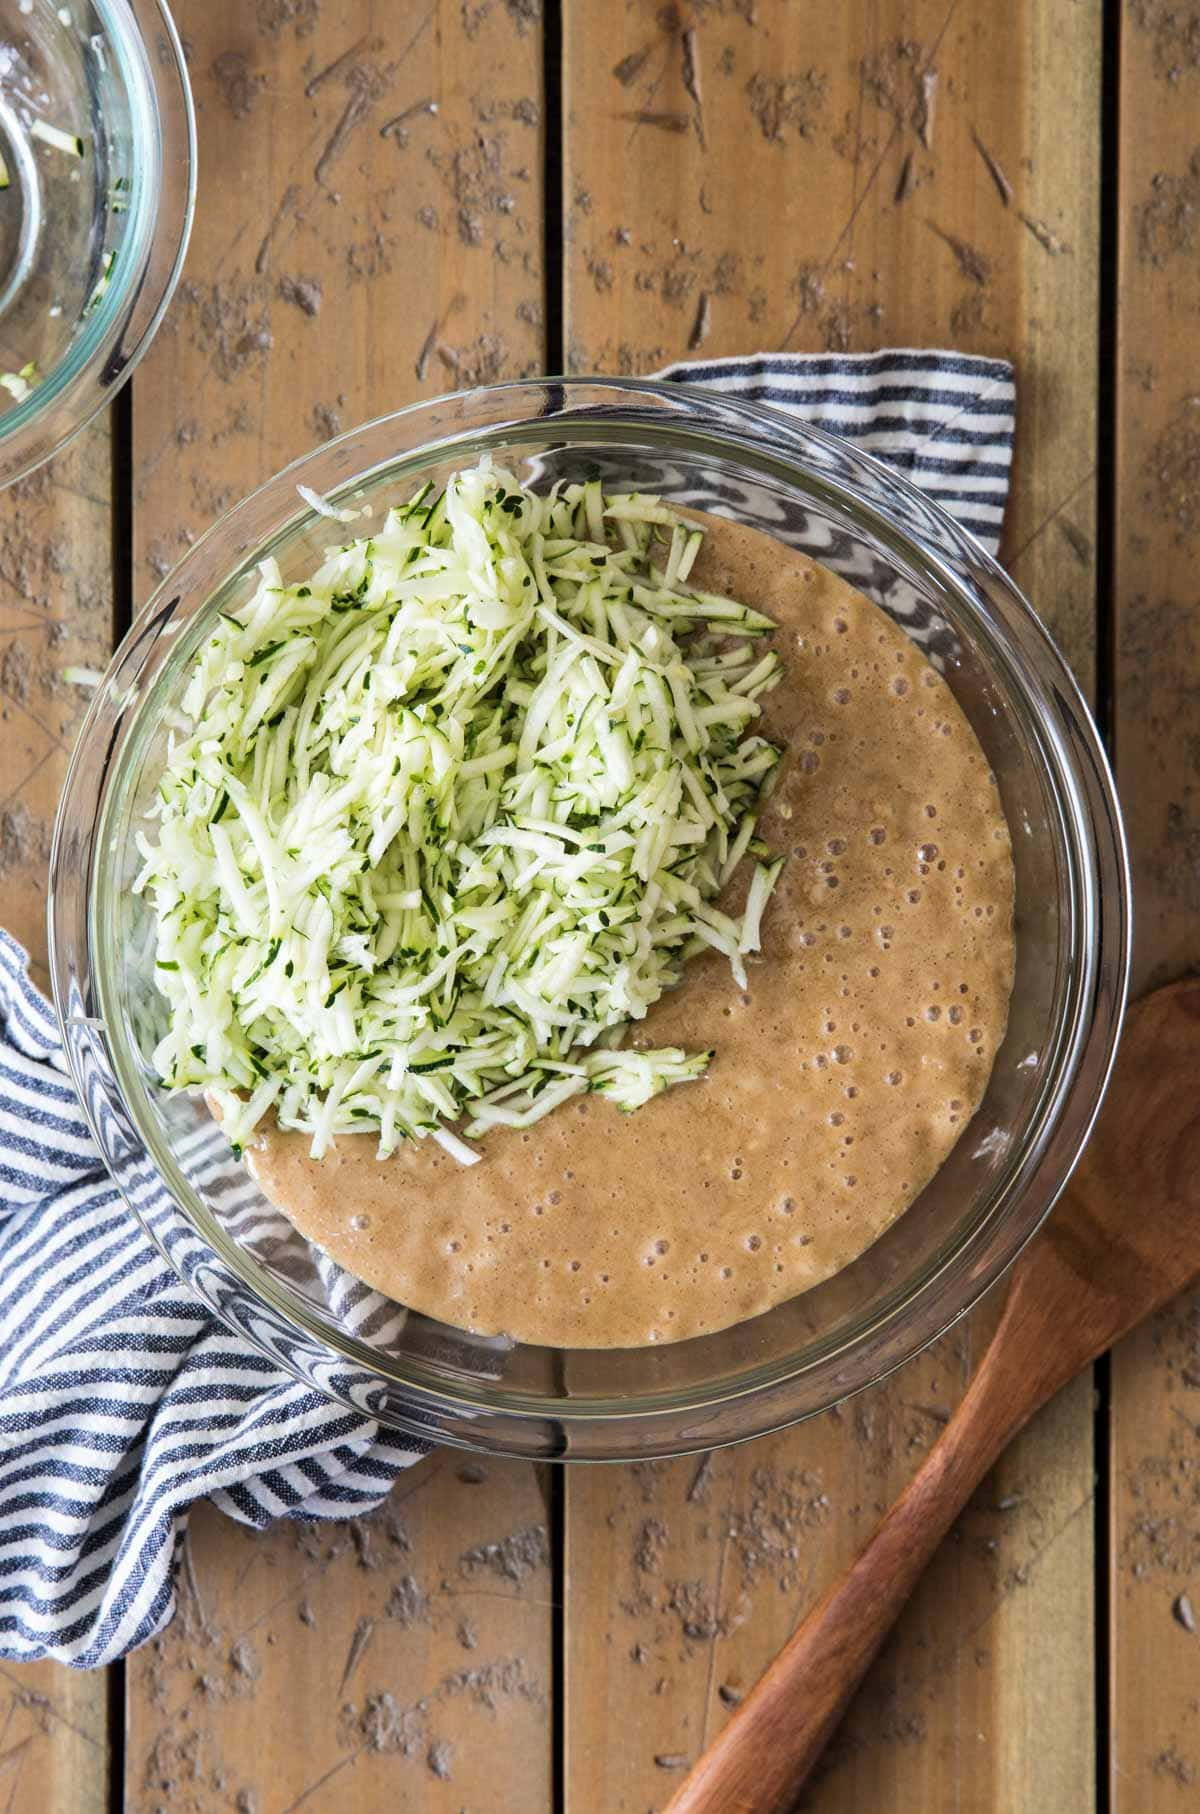 batter with shredded zucchini in glass bowl